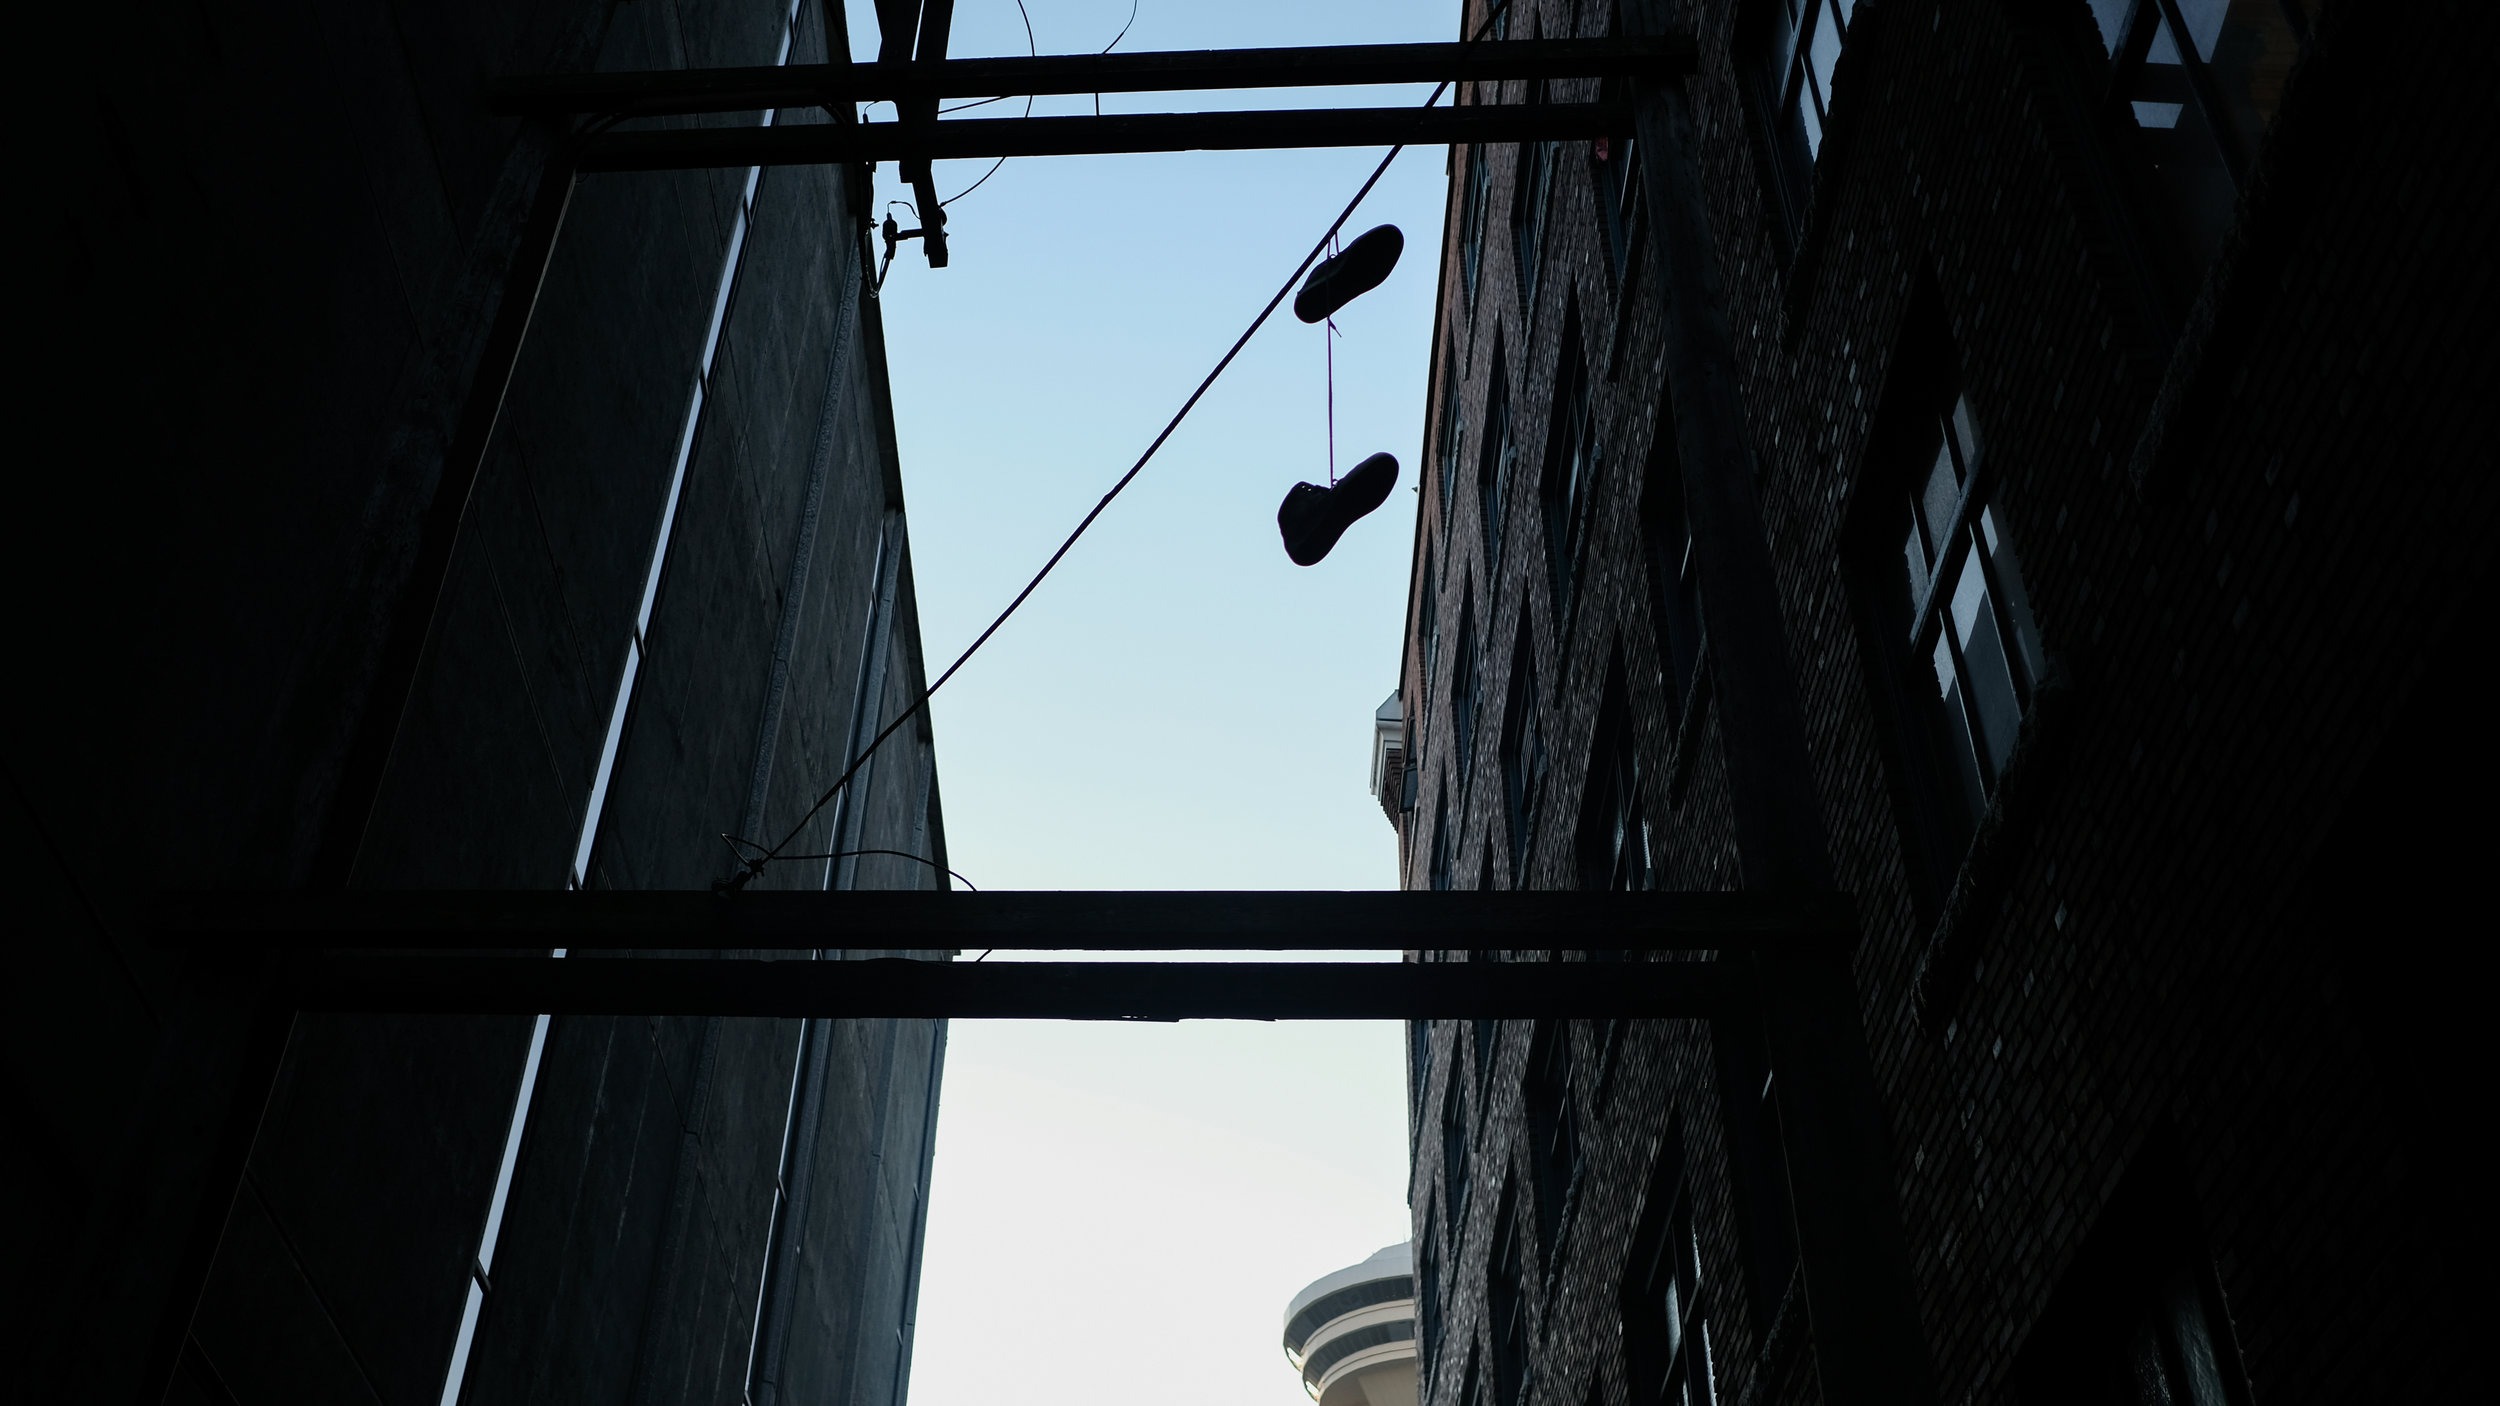 01_VANCOUVER_shoes.jpg